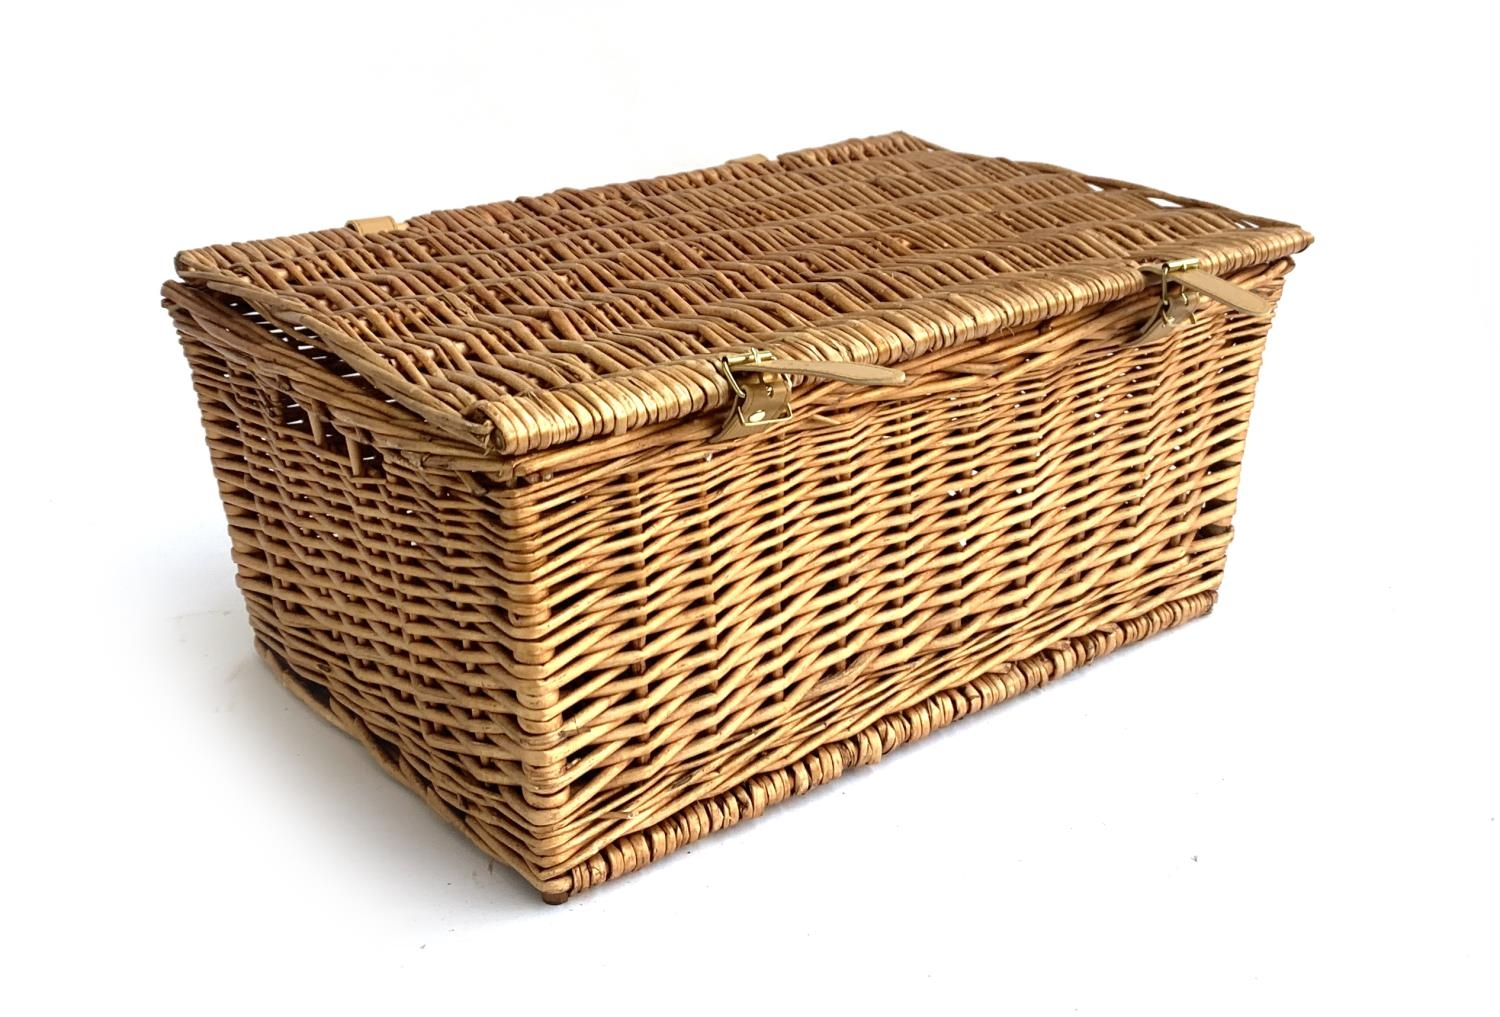 A wicker picnic hamper, with leather hinges and fasteners, 55cm wide